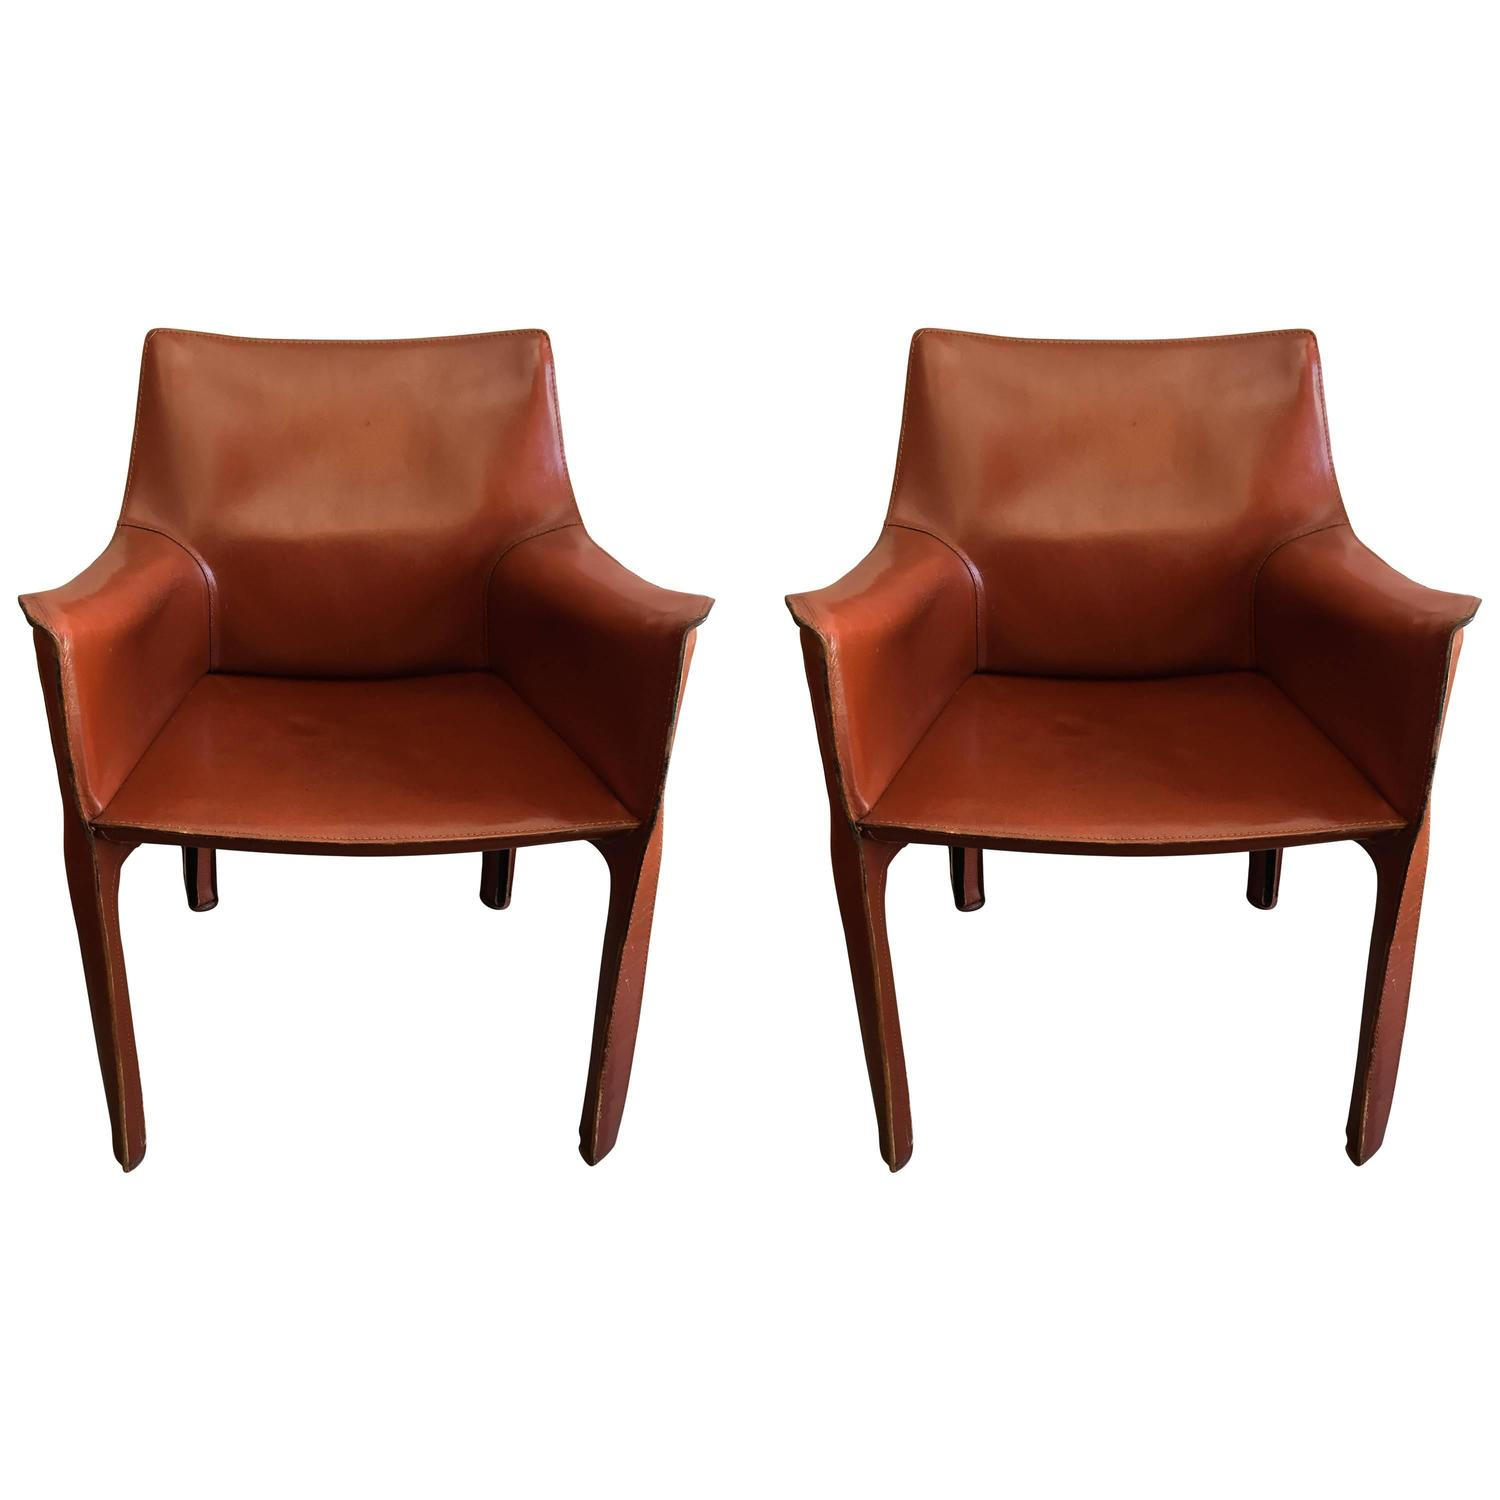 pair of mario bellini cassina cab leather chairs at 1stdibs. Black Bedroom Furniture Sets. Home Design Ideas